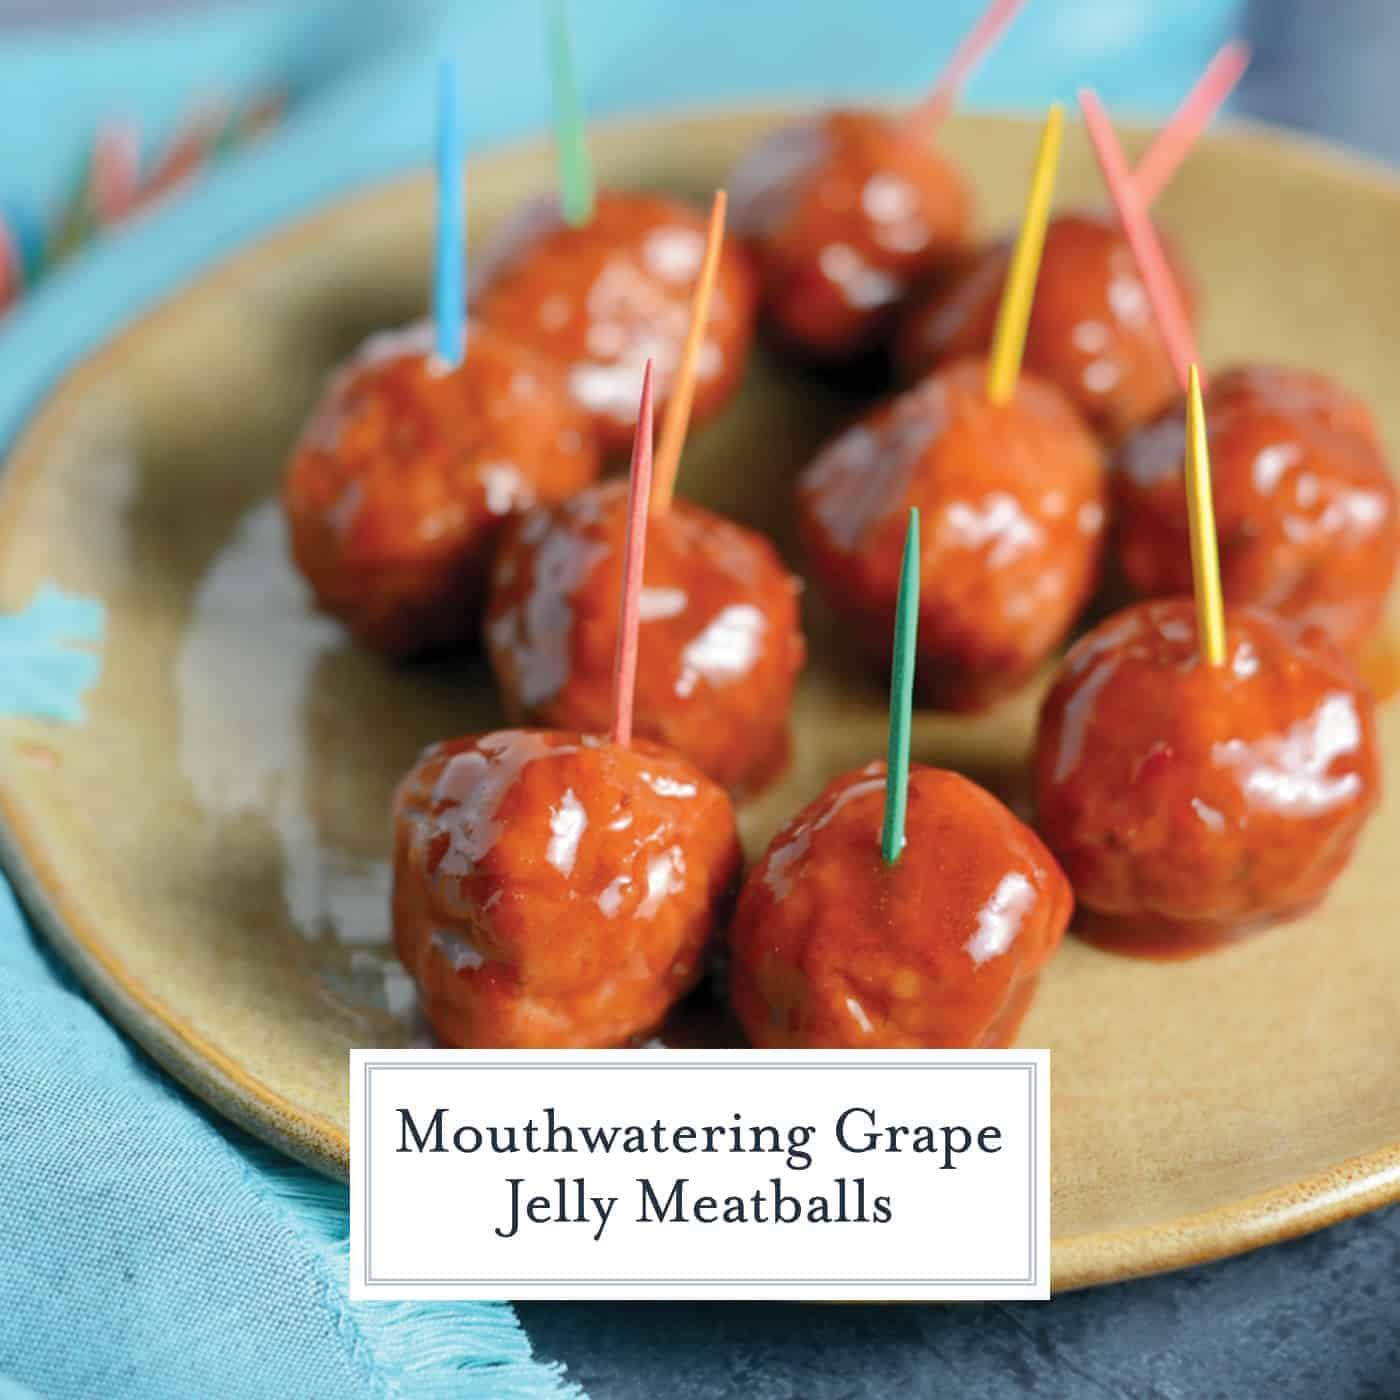 Grape Jelly Meatballs are easy to make with only THREE ingredients! Cocktail meatballs are perfect for throwing into the crockpot as a party appetizer! #cocktailmeatballs #grapejellymeatballs www.savoryexperiments.com